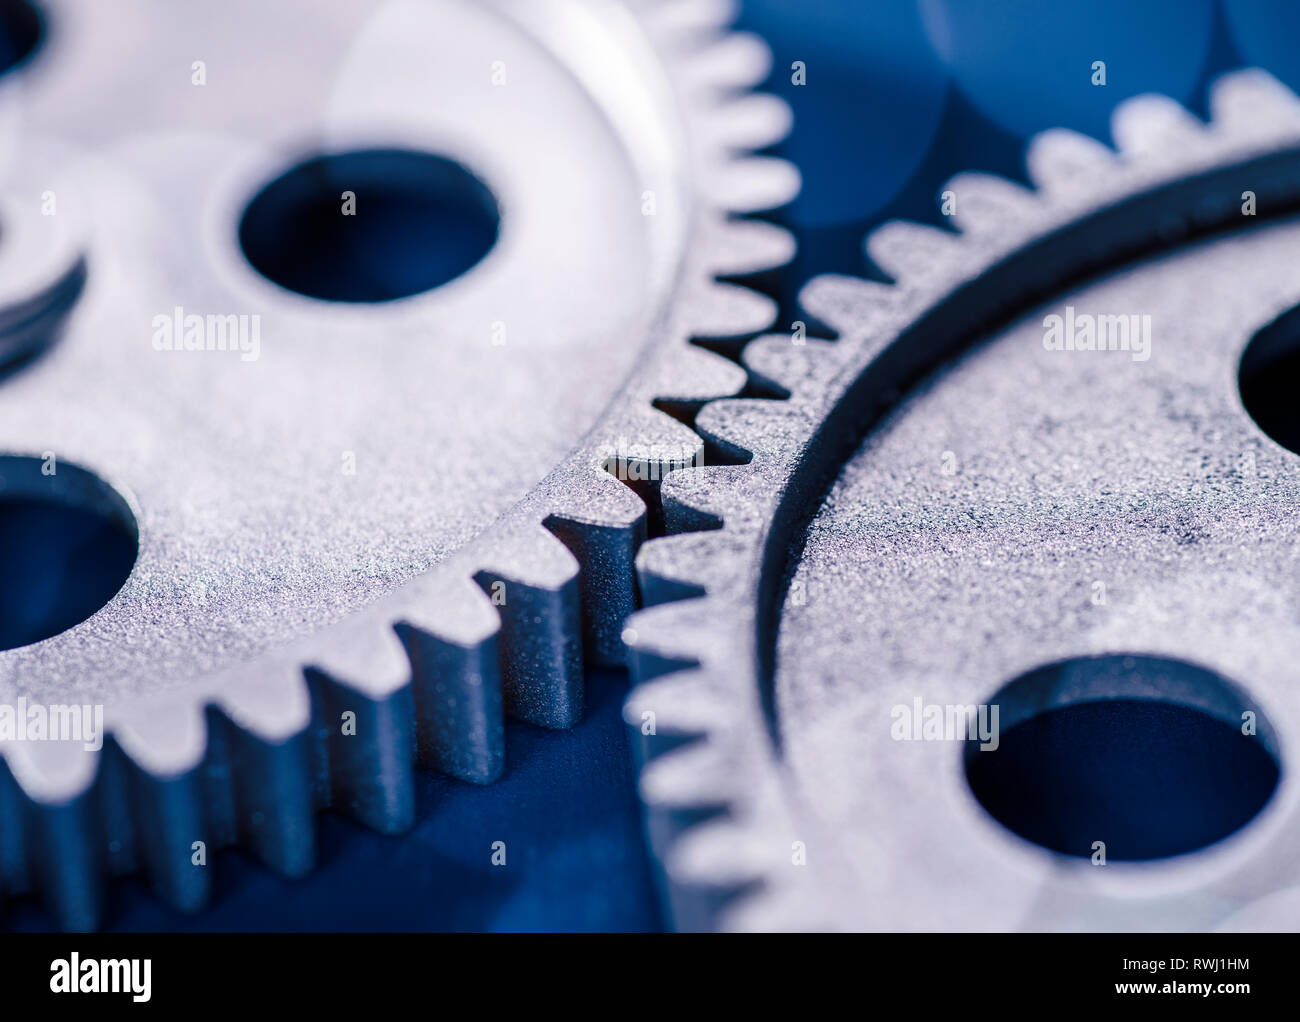 Detail of two gears meshing with each other. Stock Photo